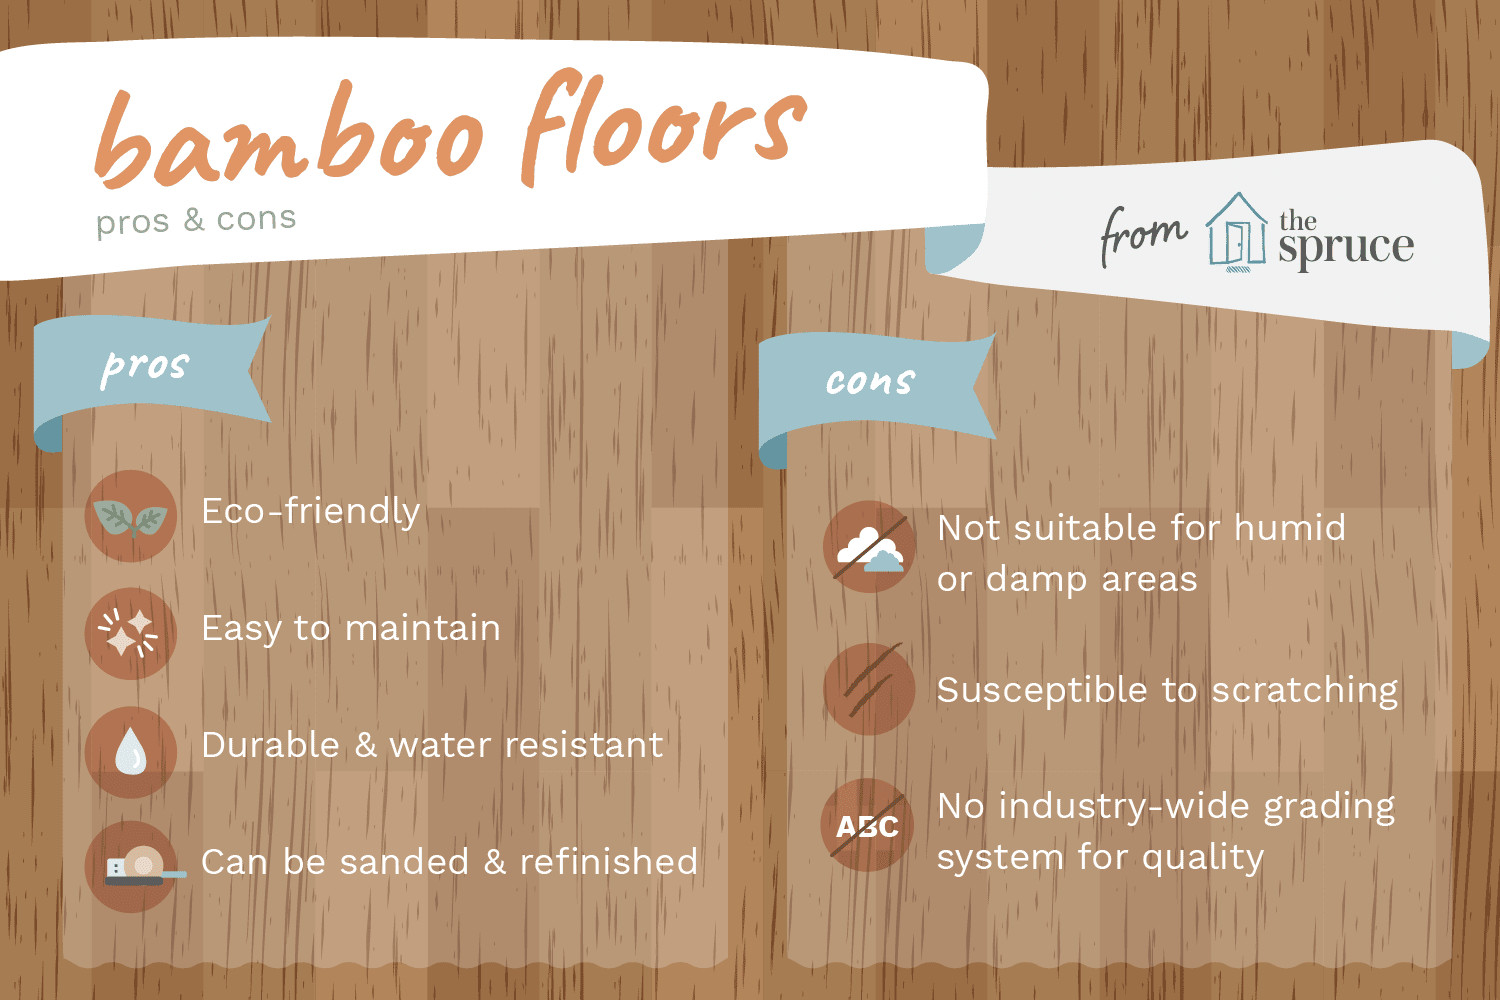 liquid hardwood floor refinishing products of the advantages and disadvantages of bamboo flooring intended for benefits and drawbacks of bamboo floors 1314694 v3 5b102fccff1b780036c0a4fa